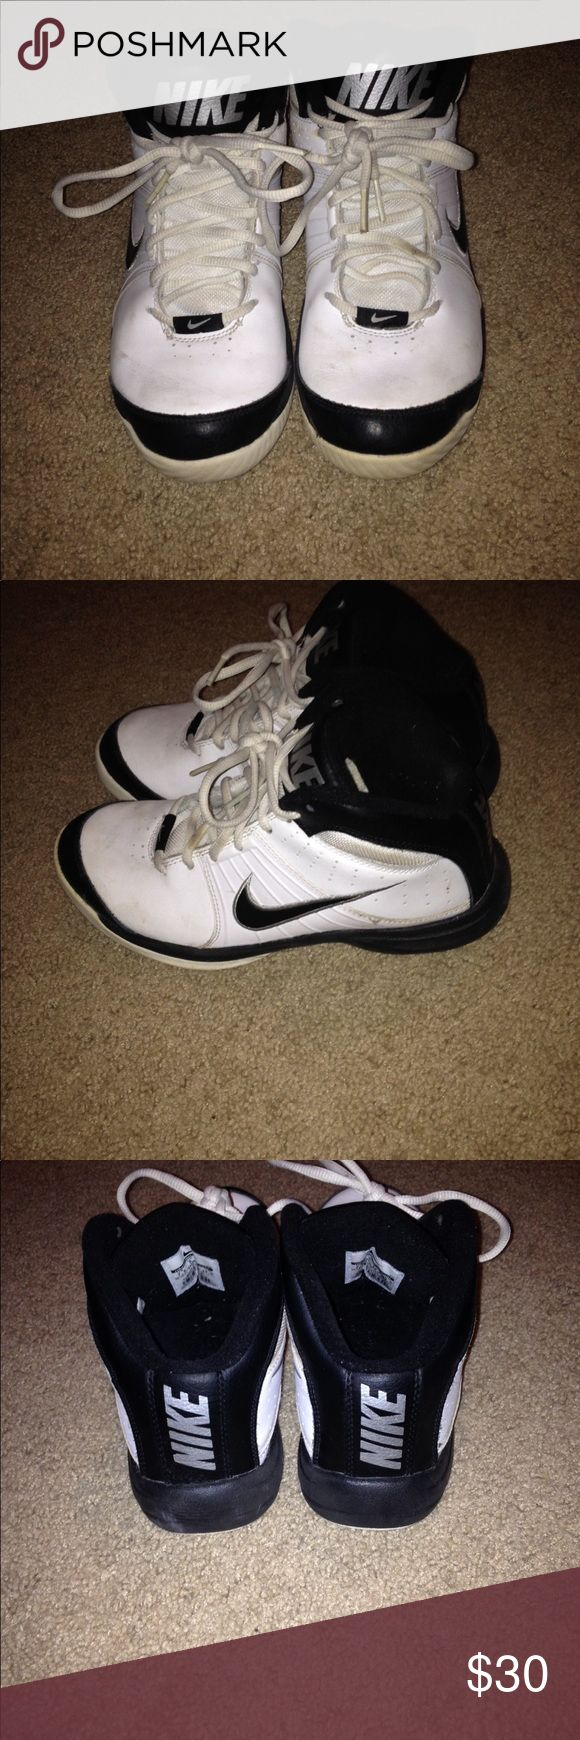 Nike Woman's Basketball Sneakers Nike White & Black Basketball Sneakers - handful of times and then my Daughter grew out of them! Nike Shoes Sneakers